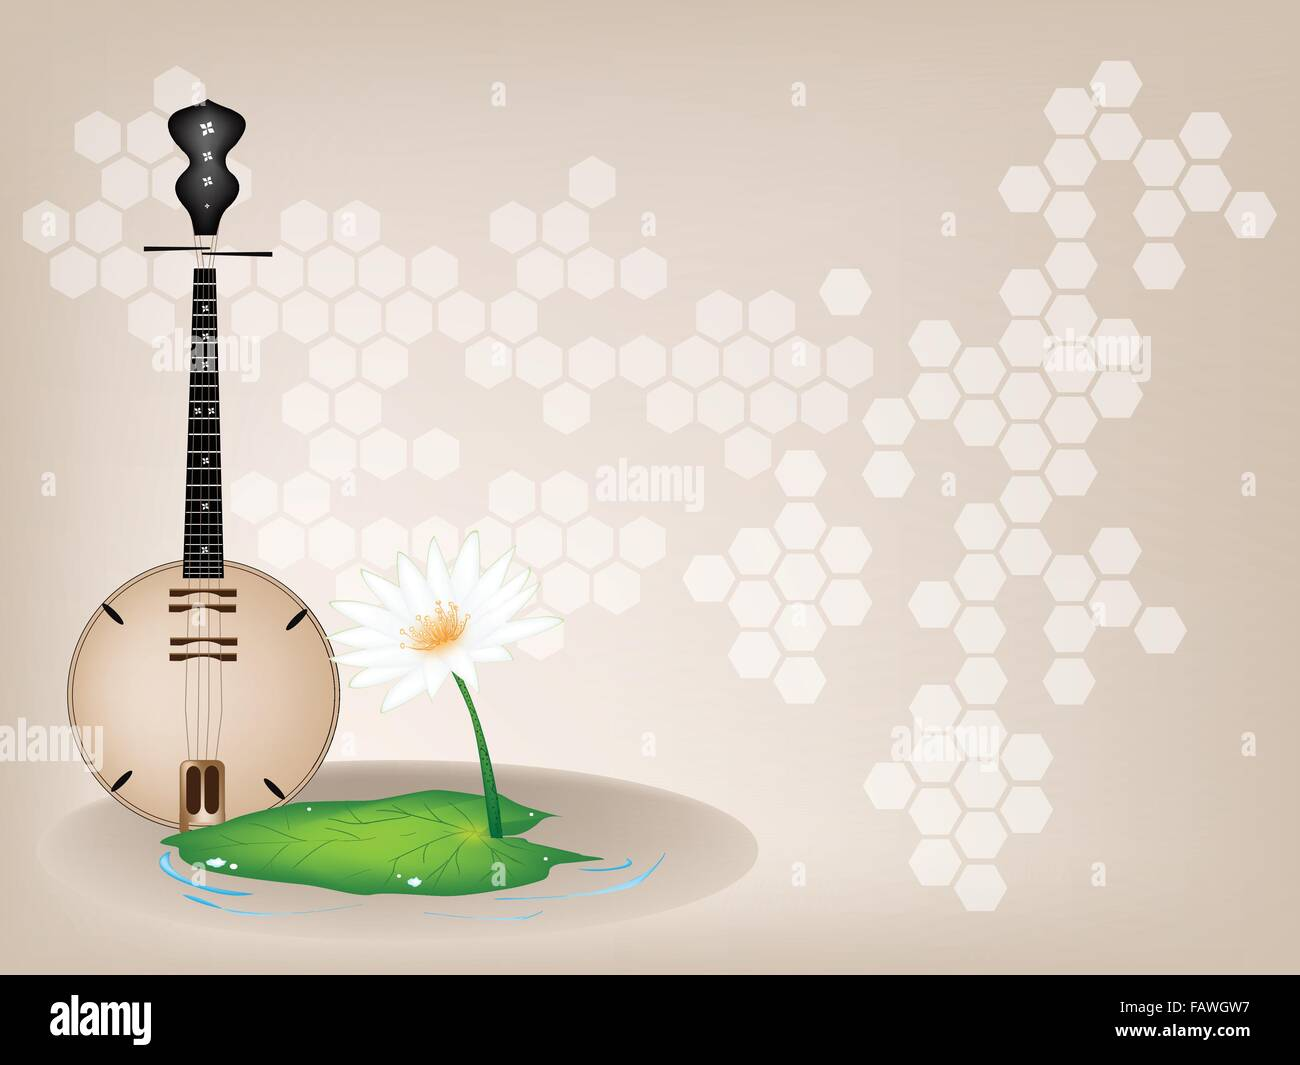 Music Instrument, An Illustration of Banjo or Dan Nguyet and White Water Lily or Lotus Flower on Beautiful Vintage - Stock Image